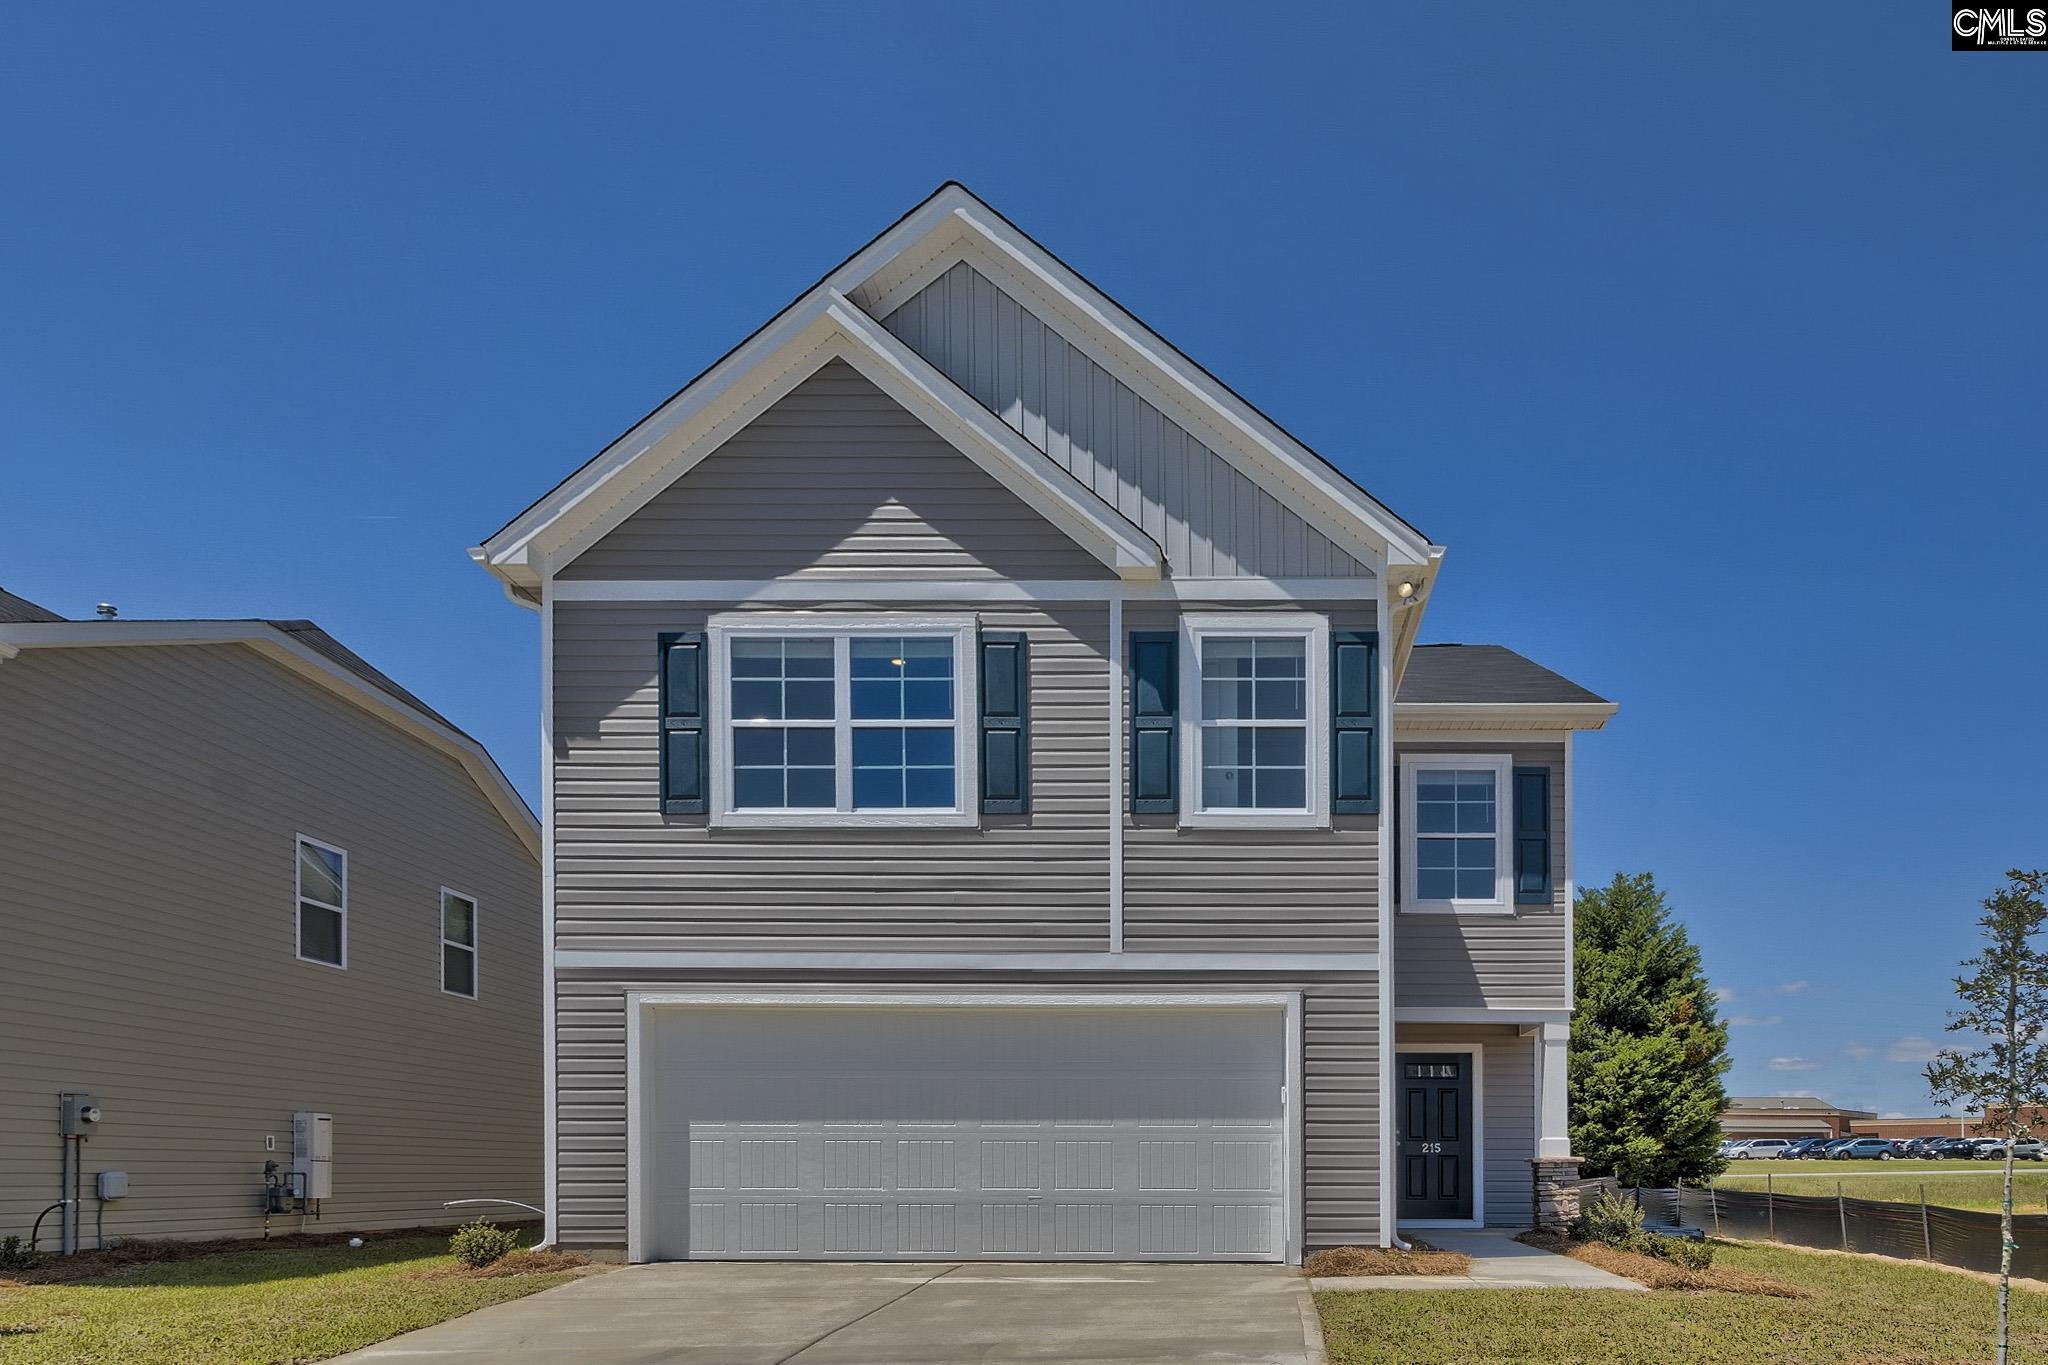 343 Liliana Columbia, SC 29223